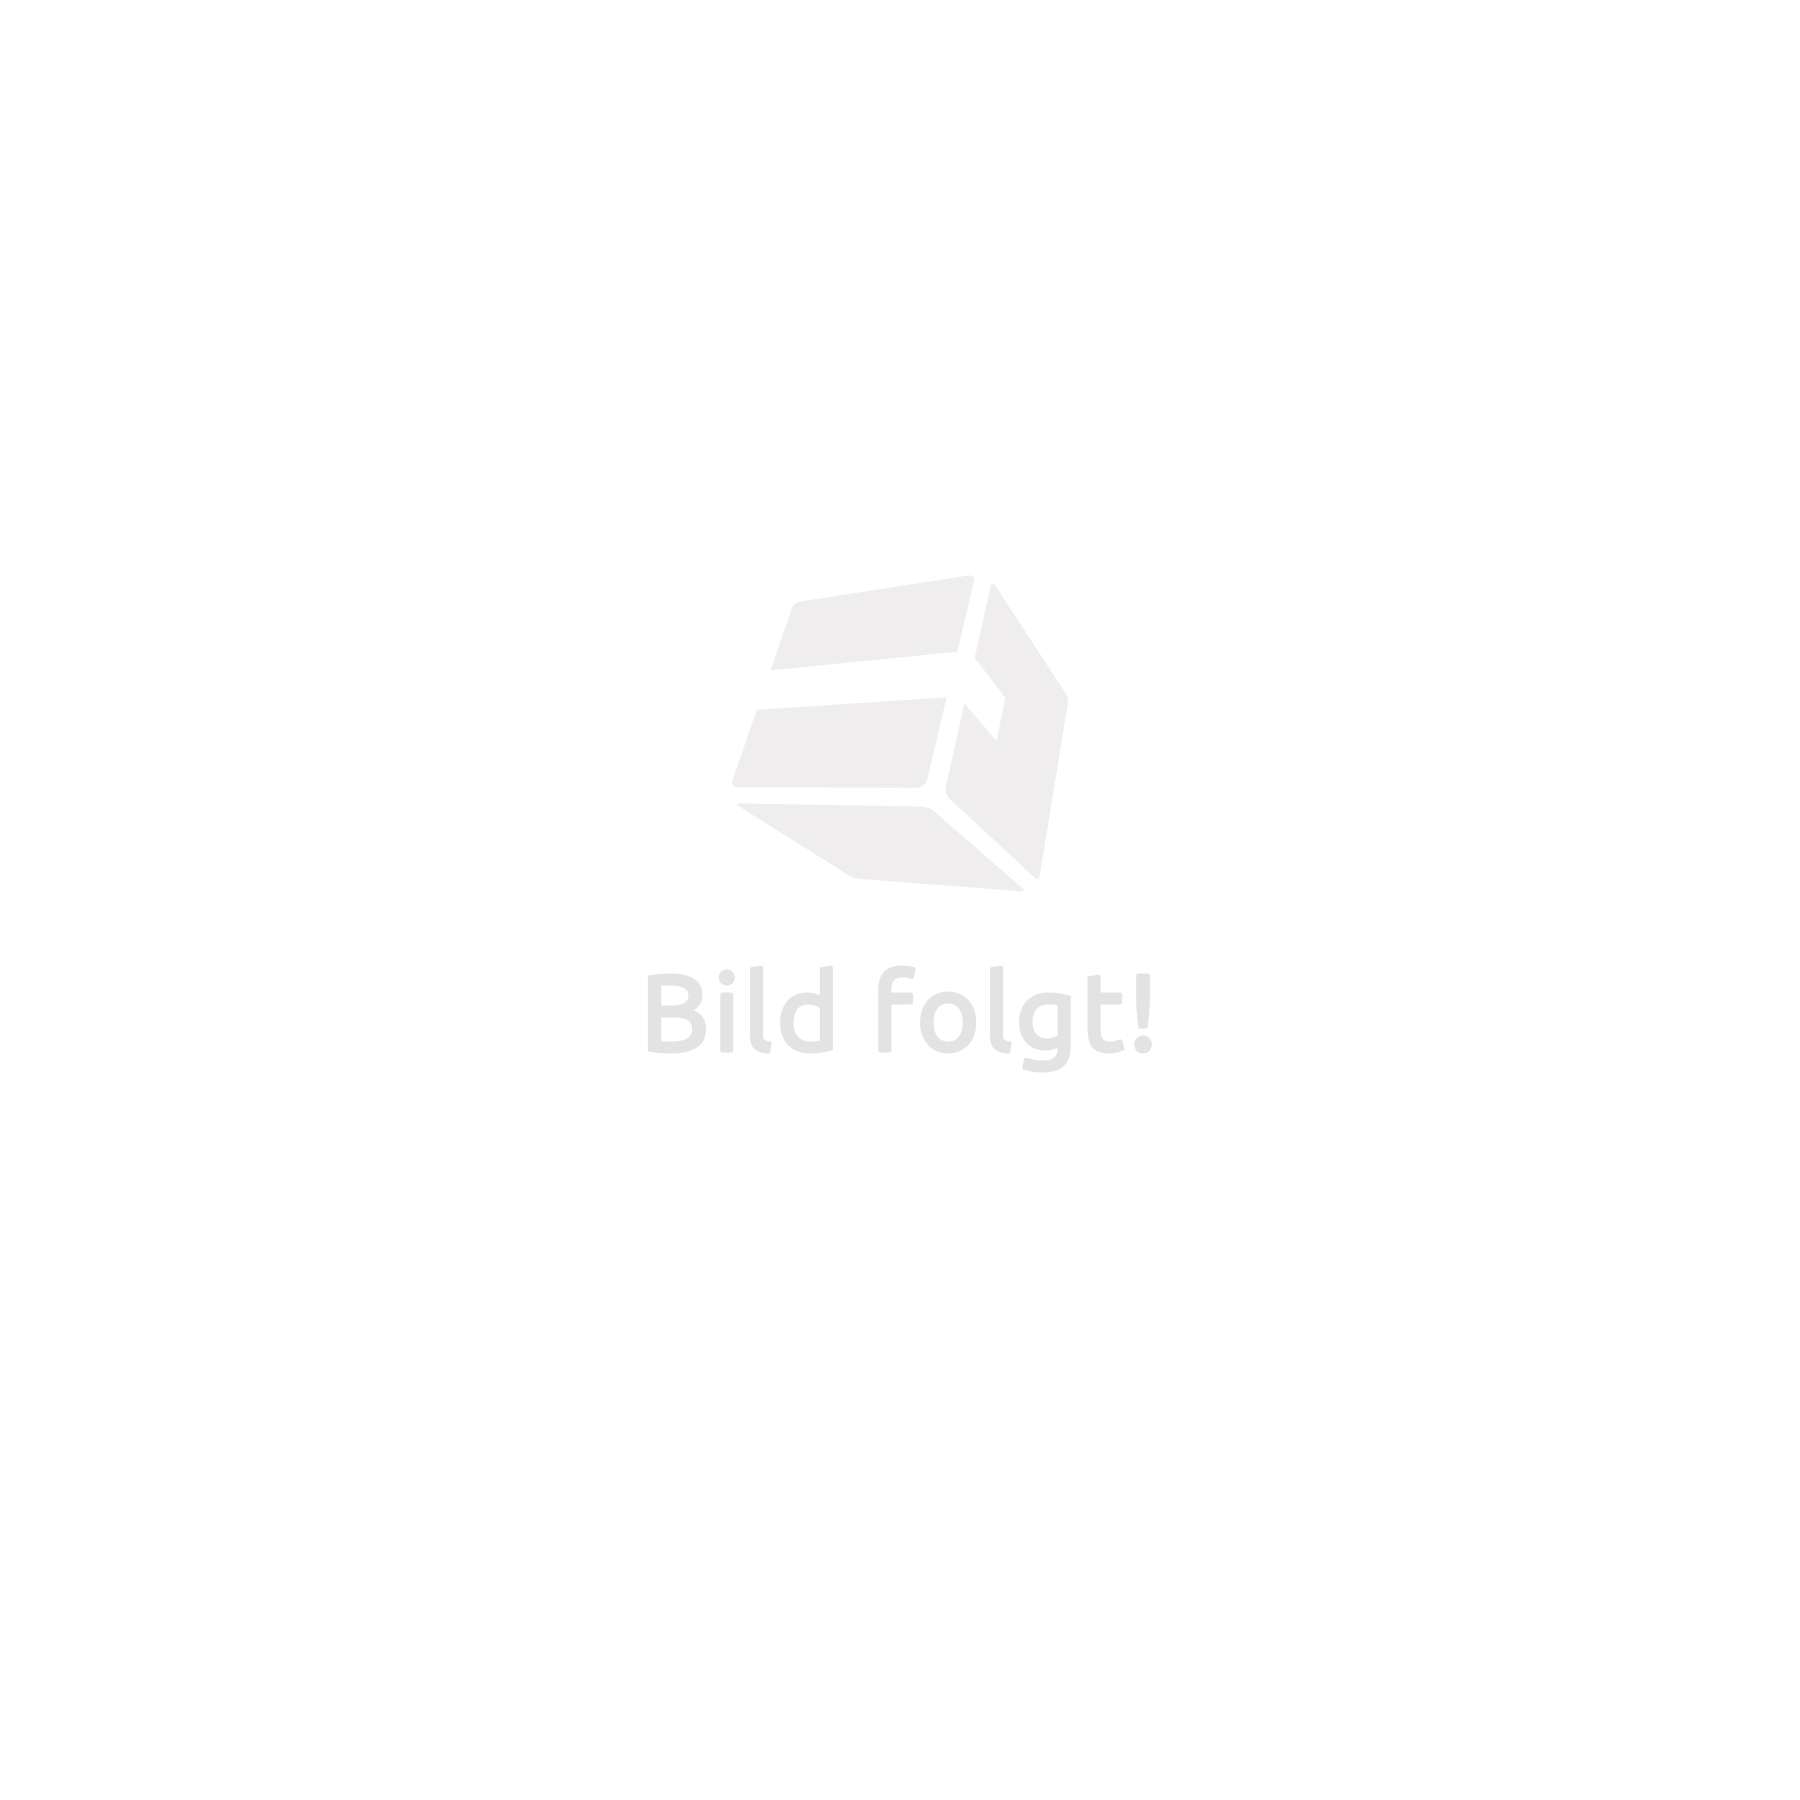 Hundetransportbox double 69 x 89 x 50 cm